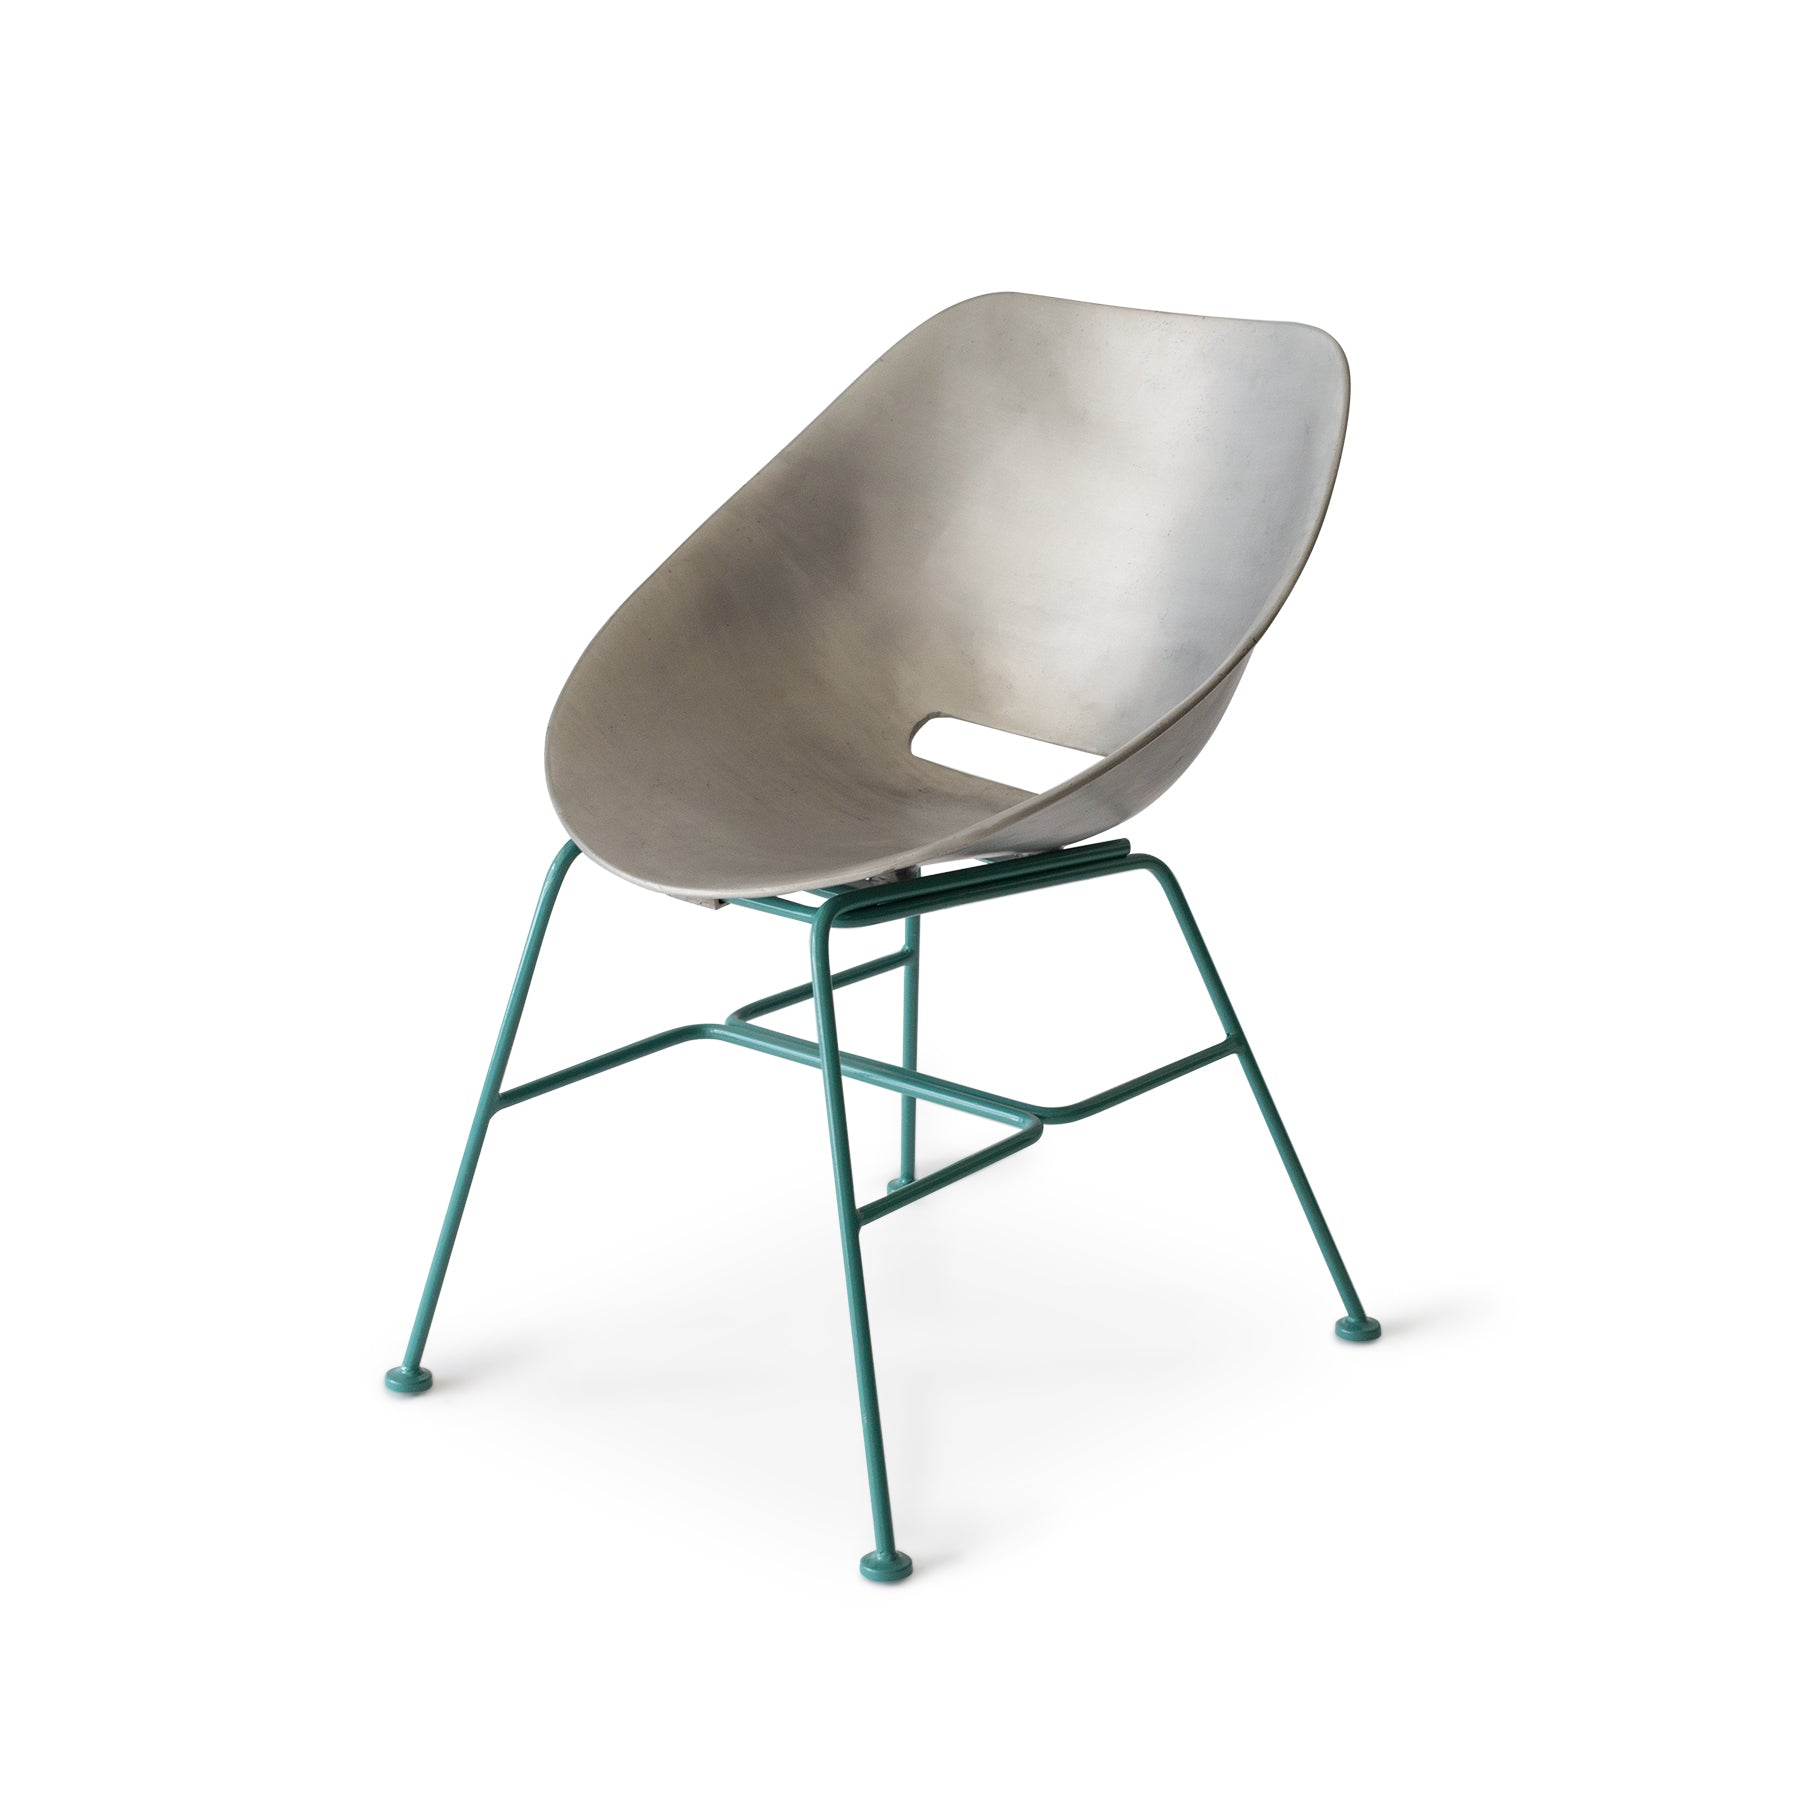 Aluminum Shell Chair with Turquoise Base Zoom Image 1